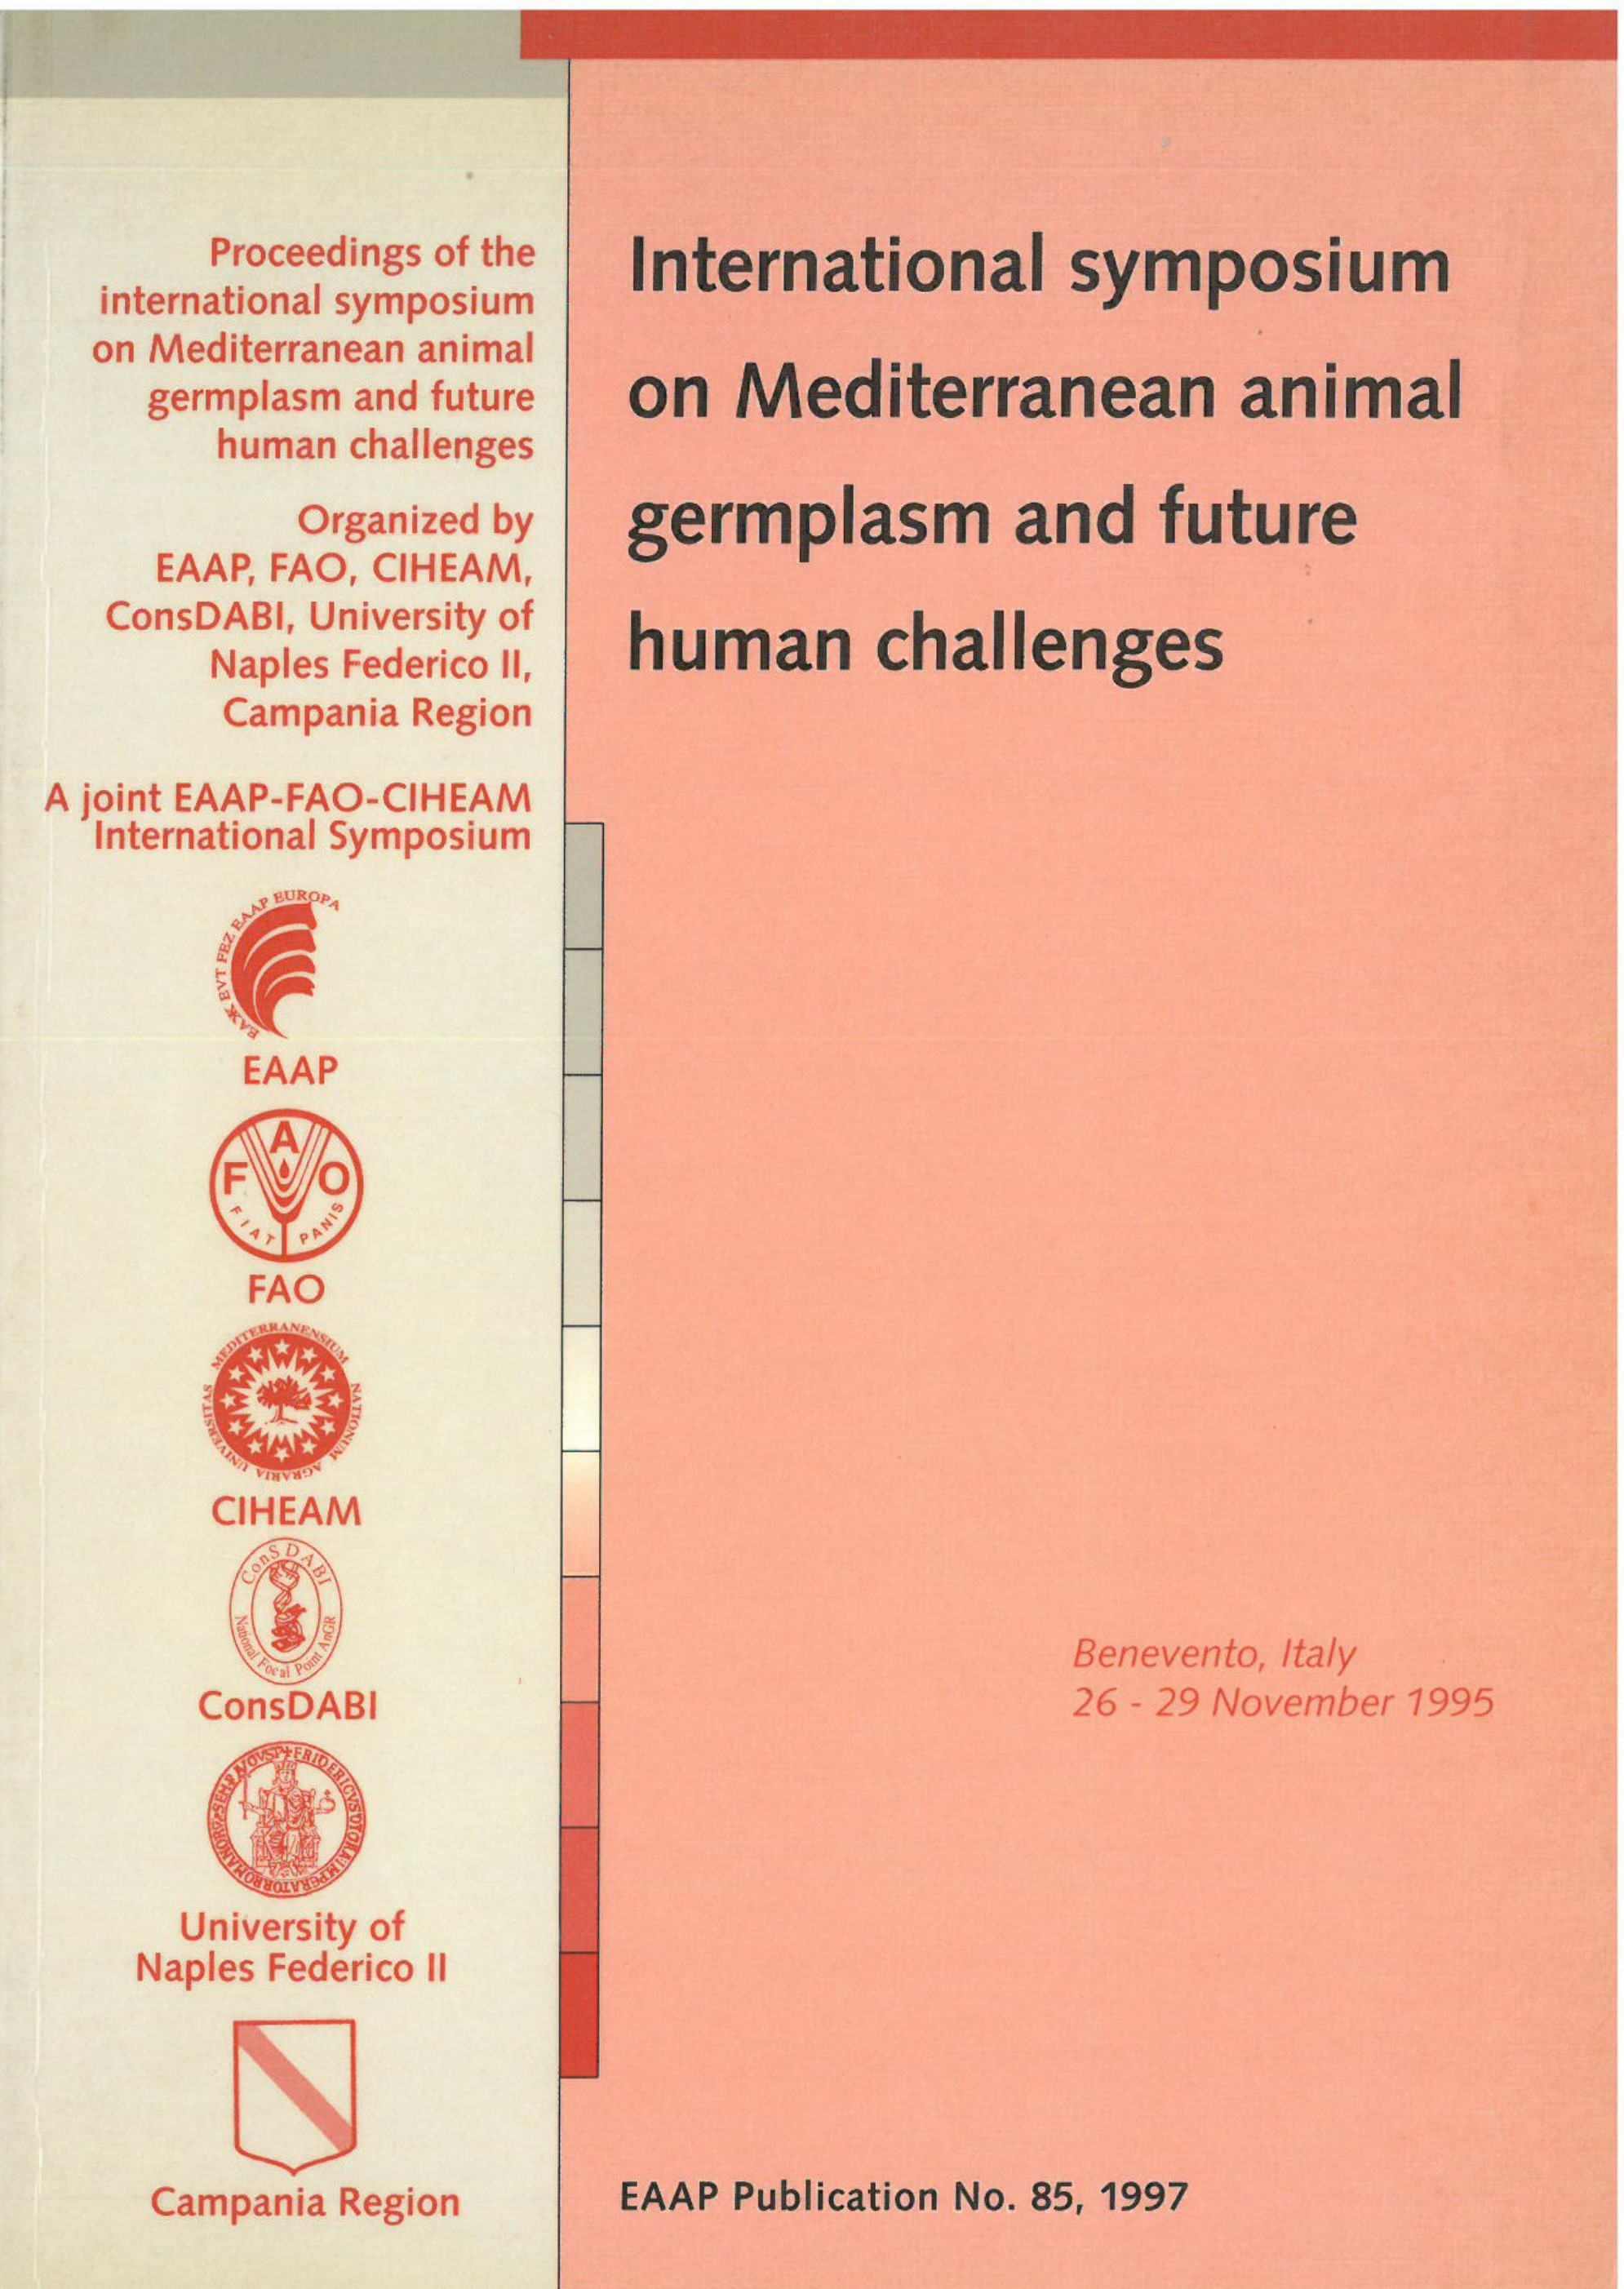 International symposium on Mediterranean animal germplasm and future human challenges